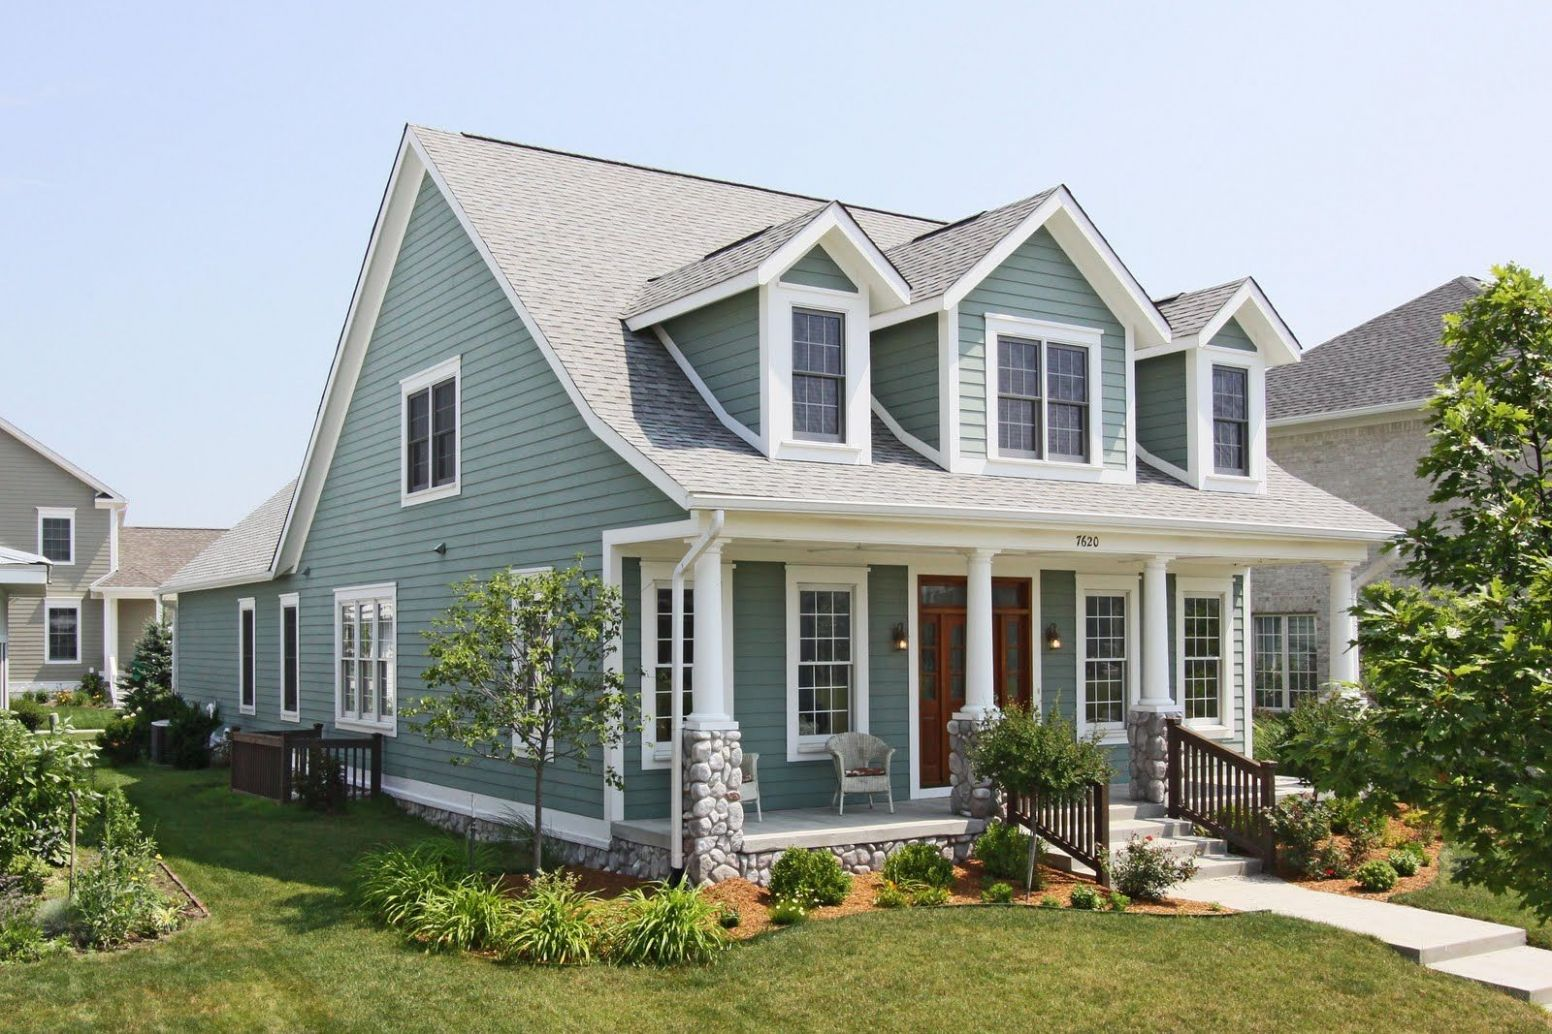 Quote of the Day! (With images) | Cape cod house exterior, Cape ...